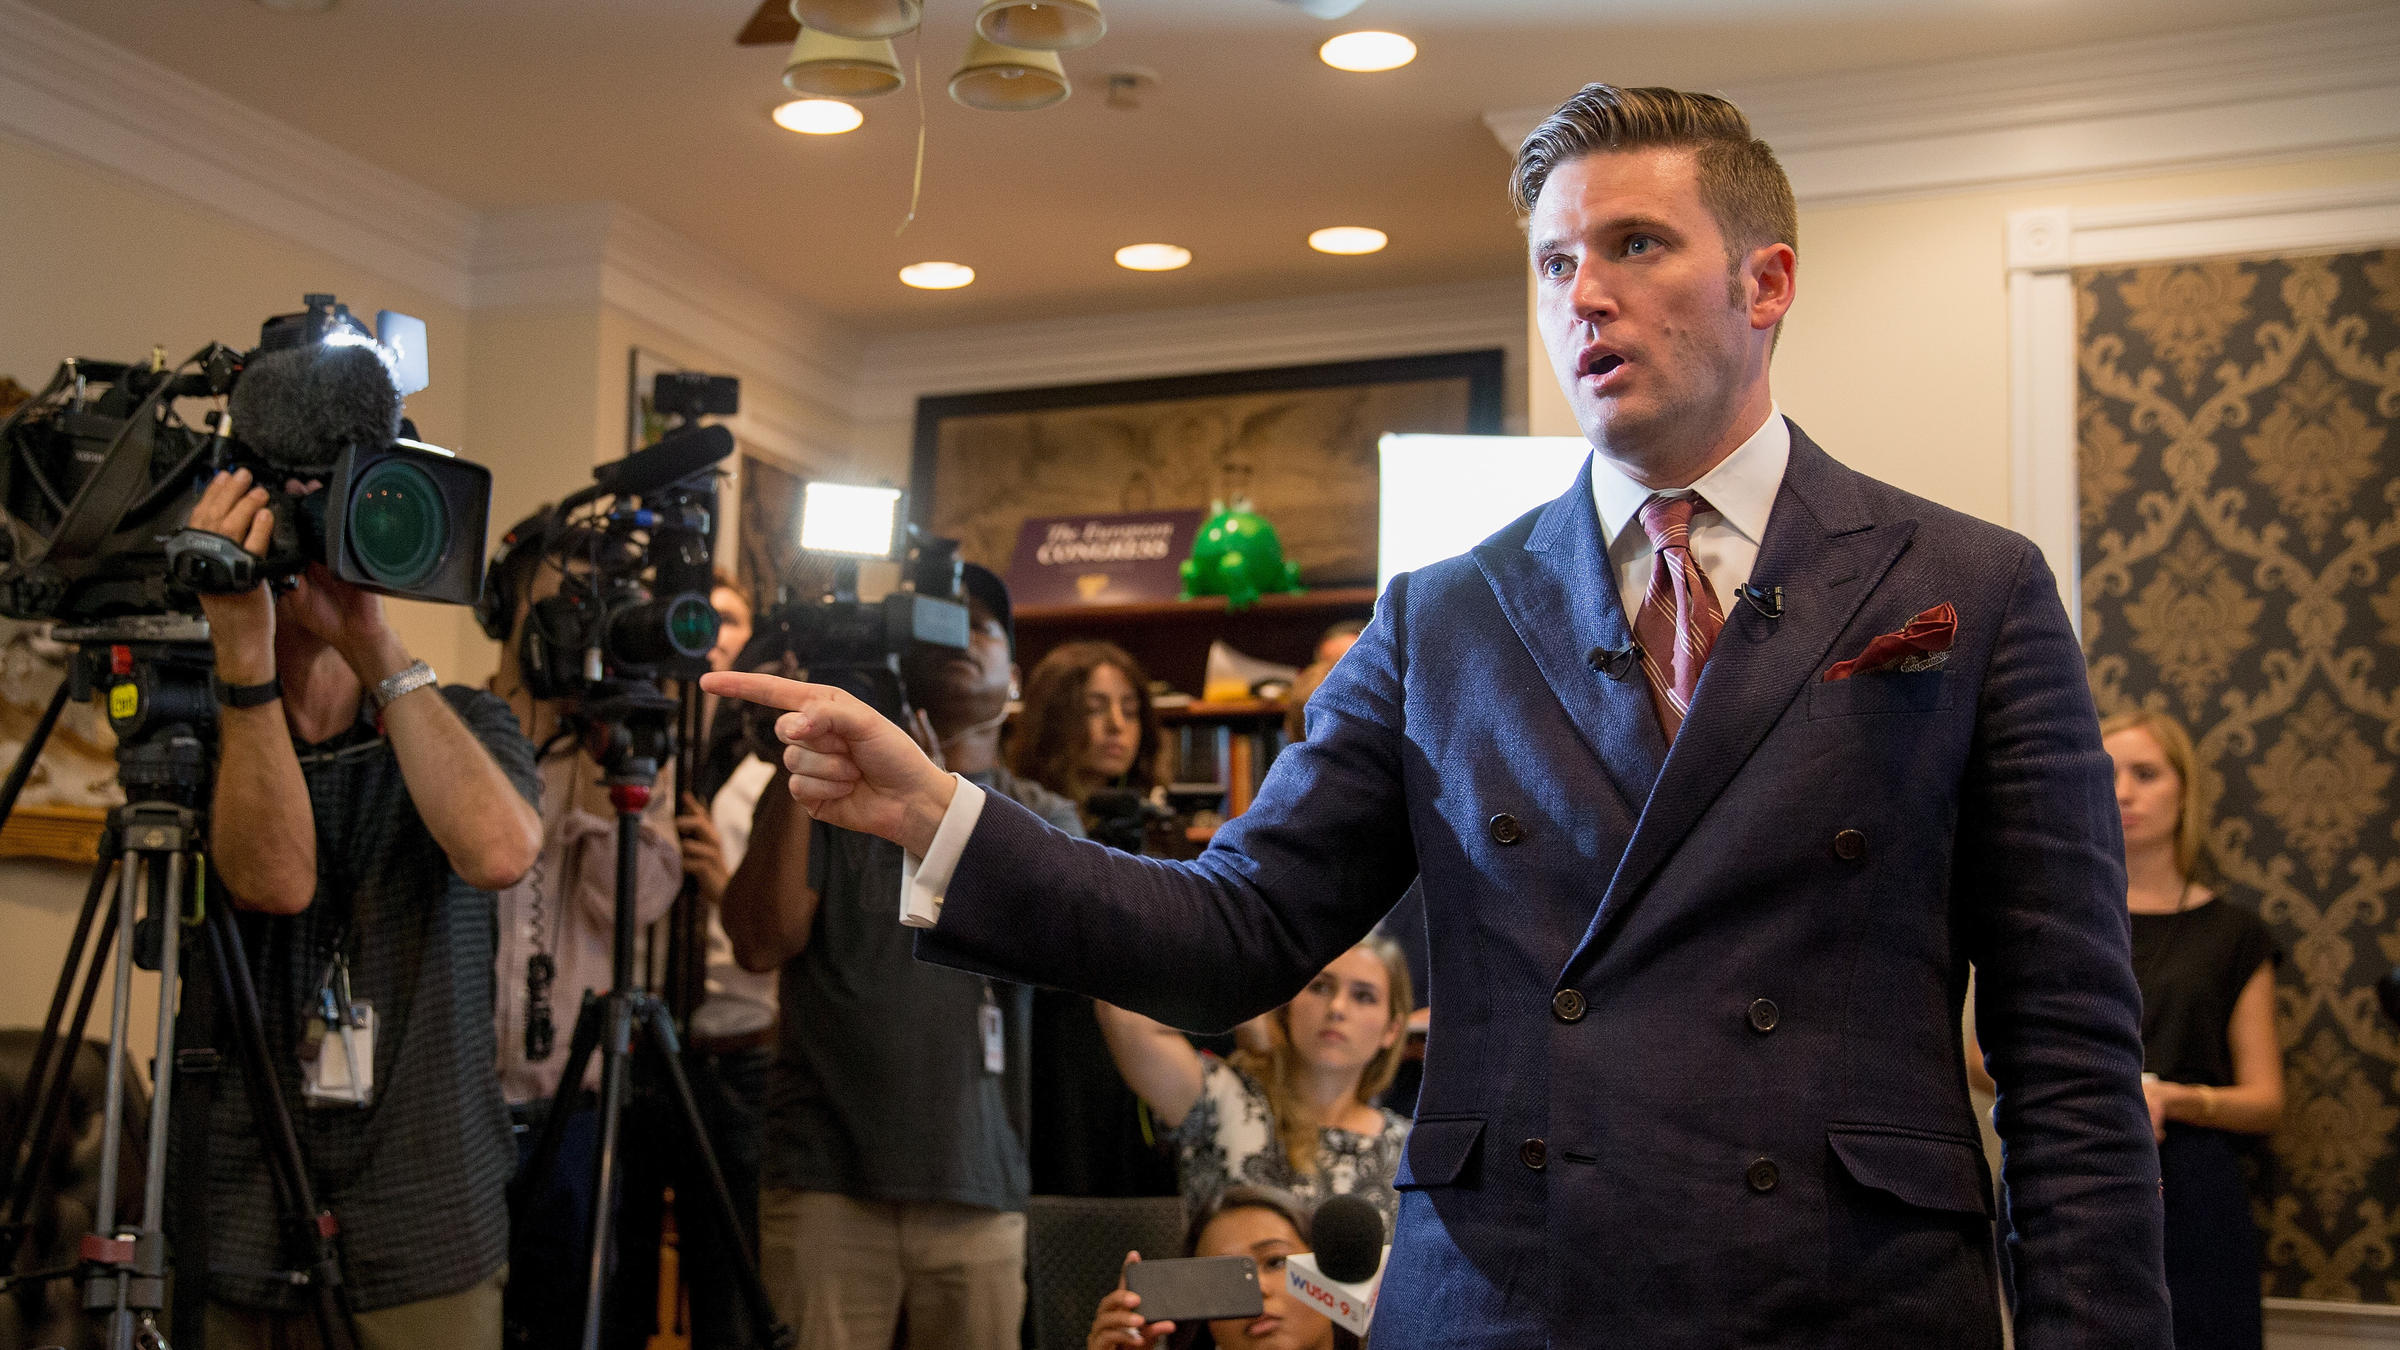 White Nationalist Richard Spencer may speak at UF; counter protest planned